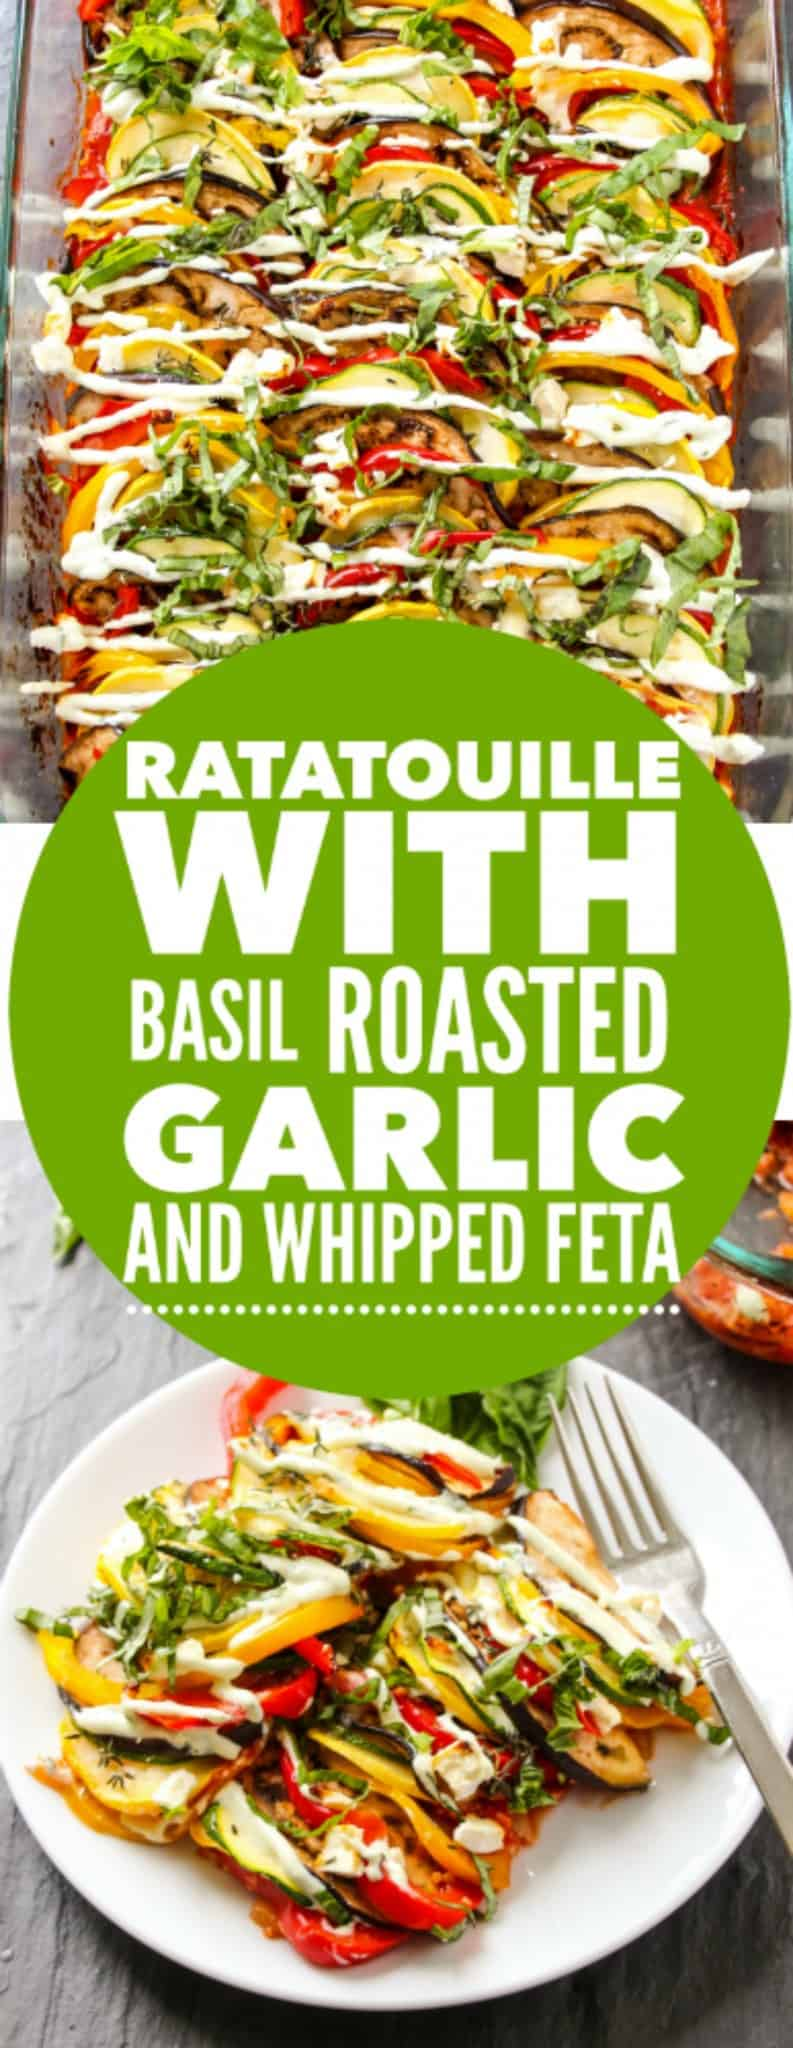 Homemade Ratatouille with Basil Roasted Garlic and Whipped Feta ...